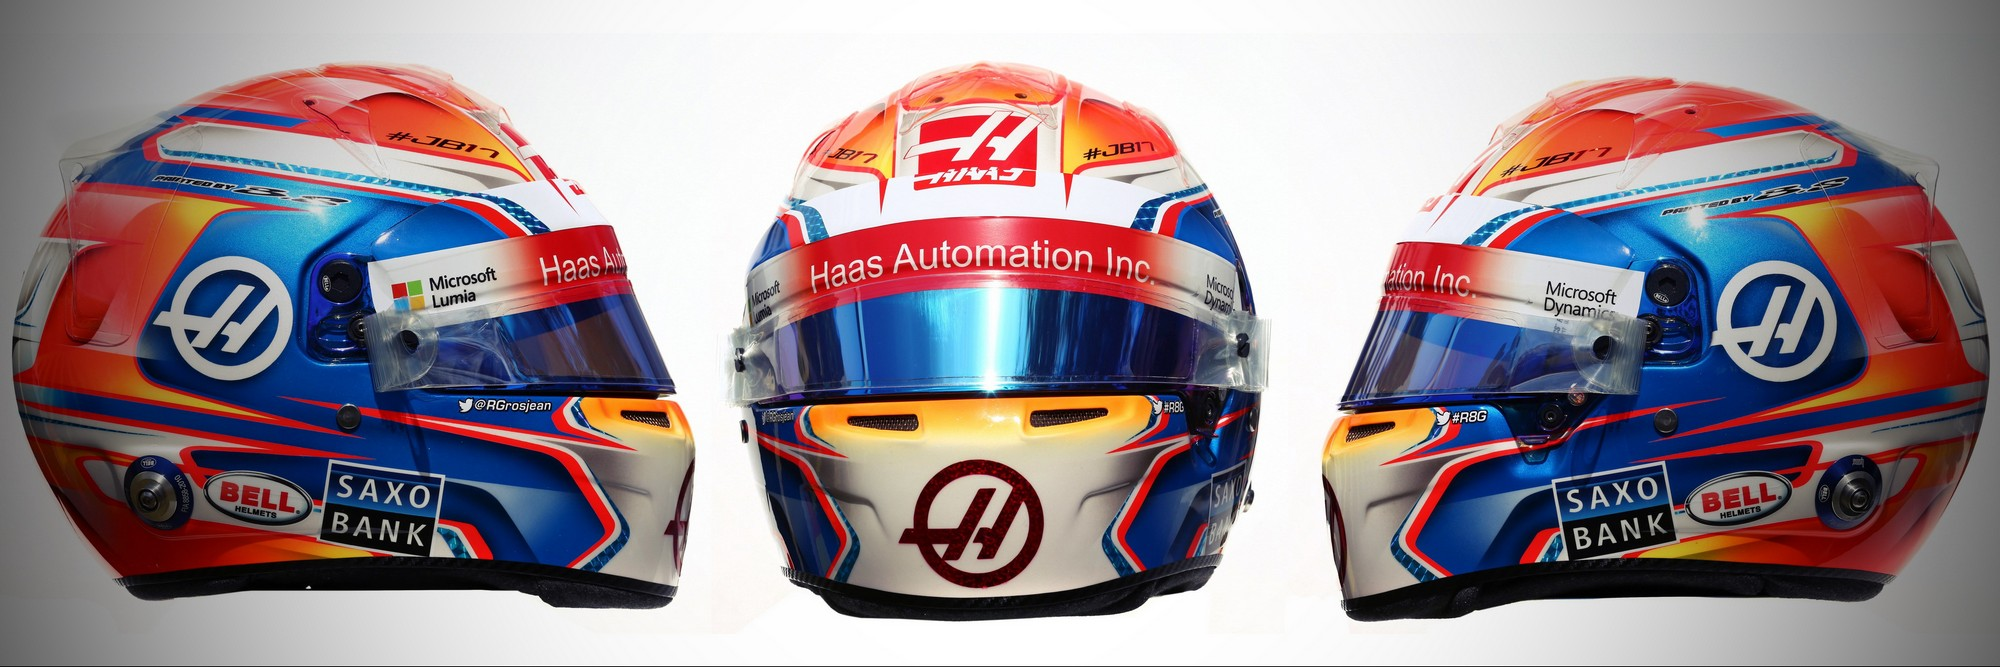 Шлем Романа Грожана на сезон 2016 года | 2016 helmet of Romain Grosjean